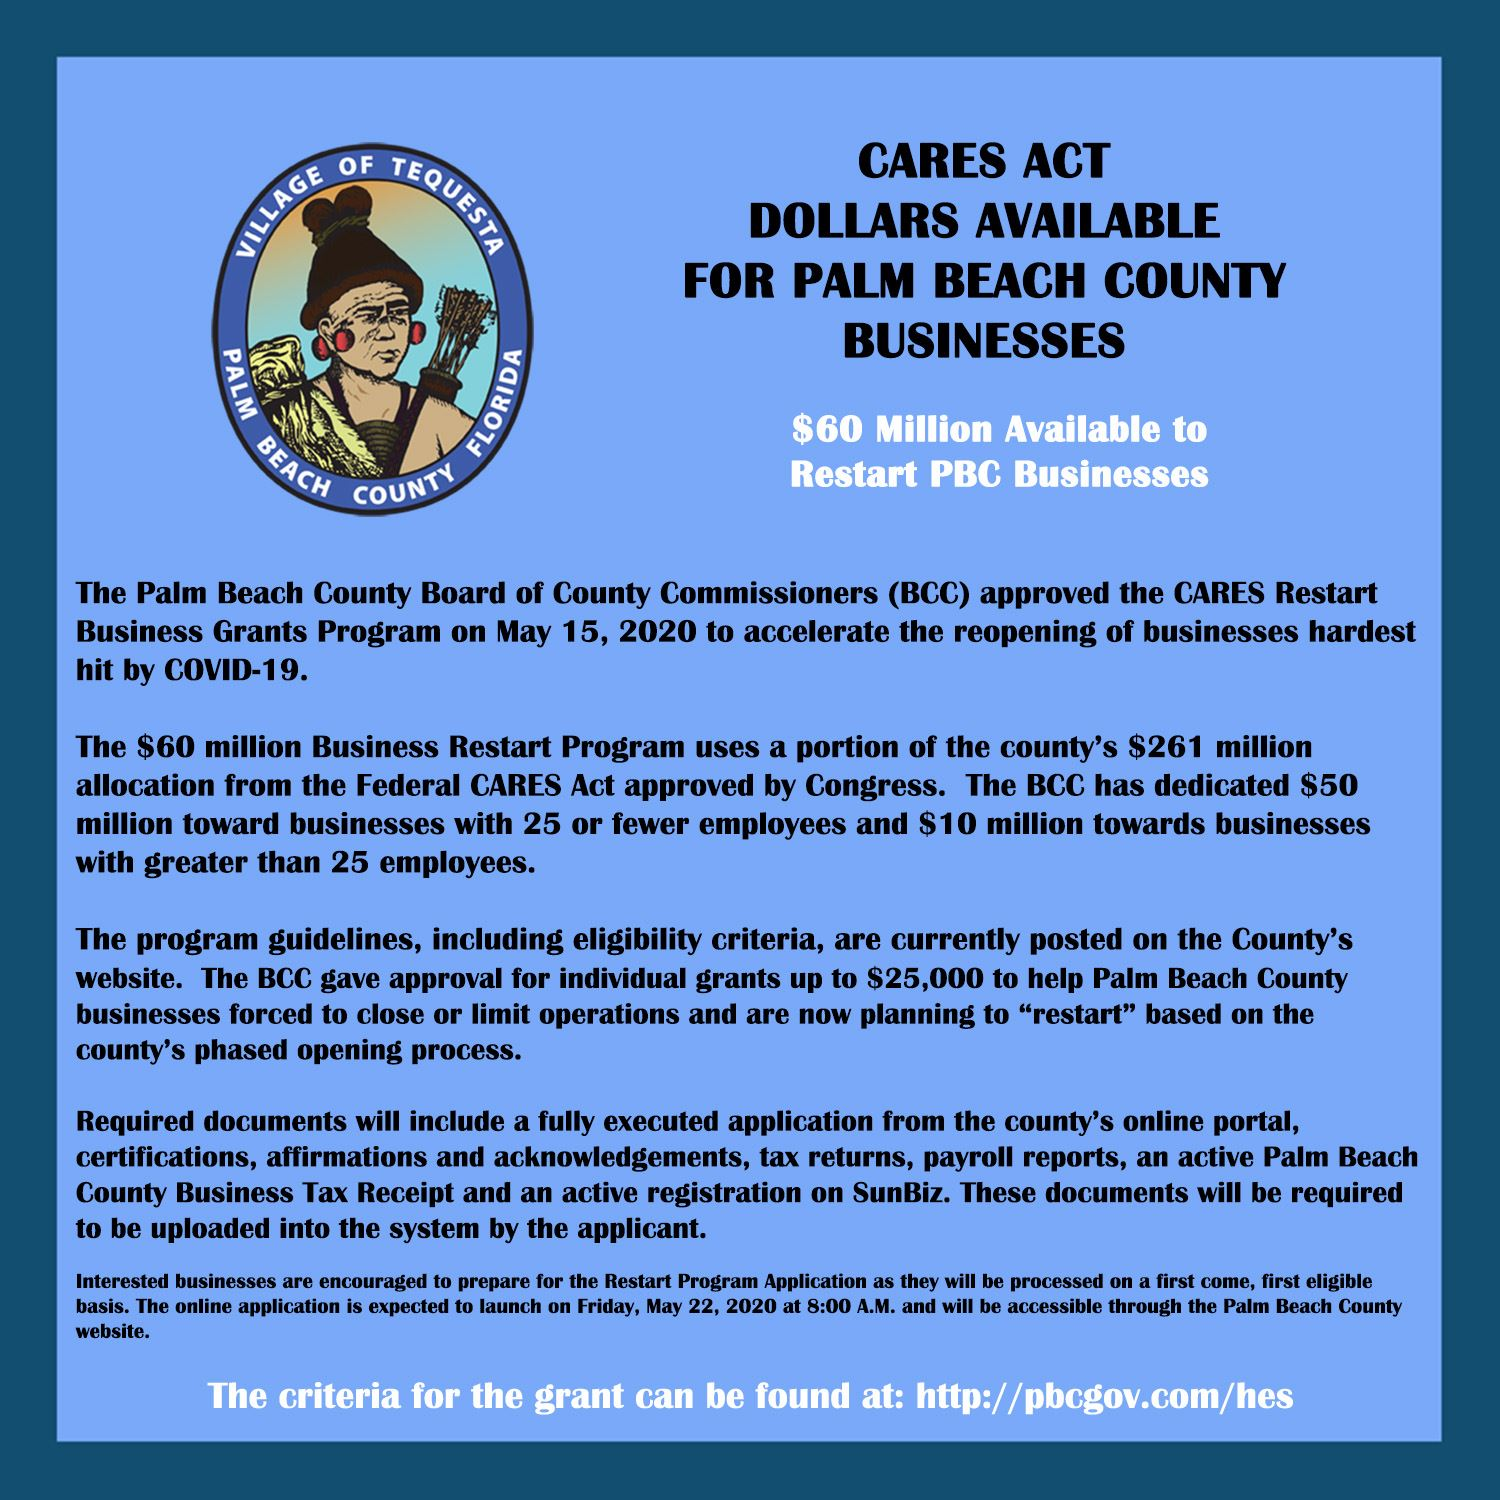 CARES ACT DOLLARS AVAILABLE FOR PALM BEACH COUNTY